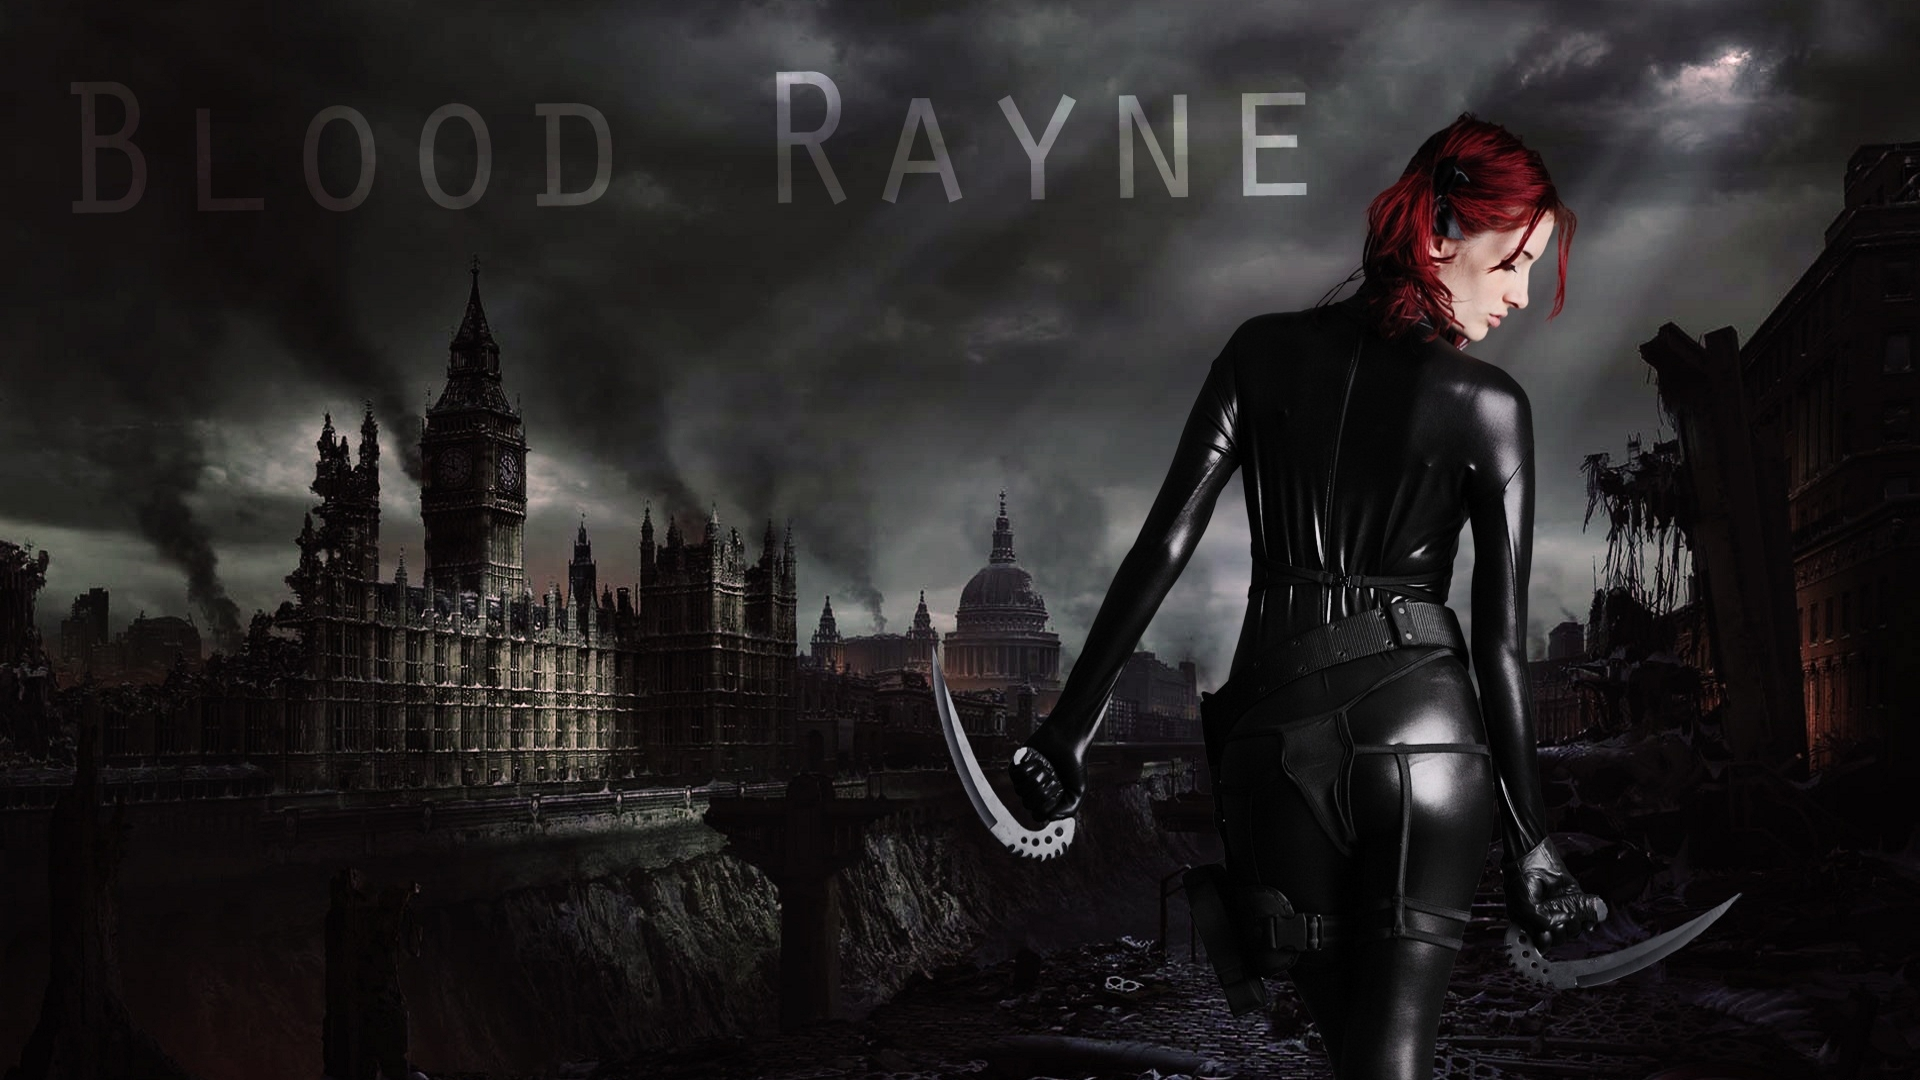 Celebrity - Susan Coffey  Hot Cute Photography Eye Hair Movie Bloodrayne Weapon Latex Thong Hellgate London Model Video Game Wallpaper